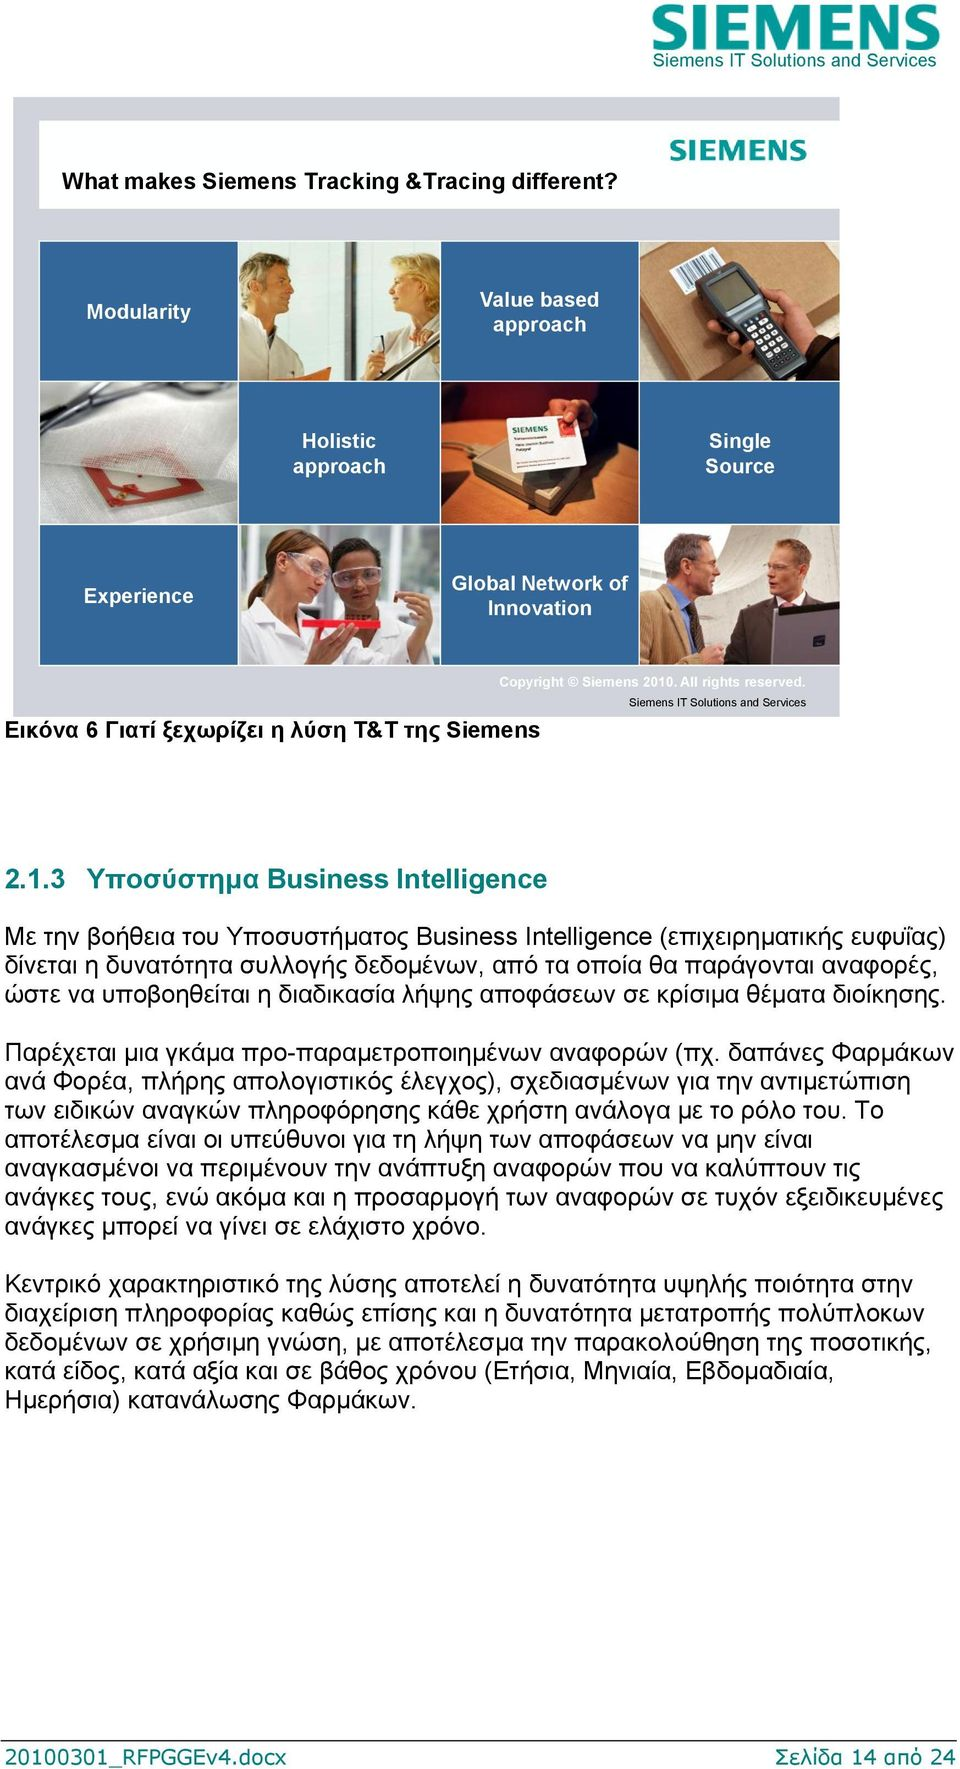 Siemens IT Solutions and Services 2.1.